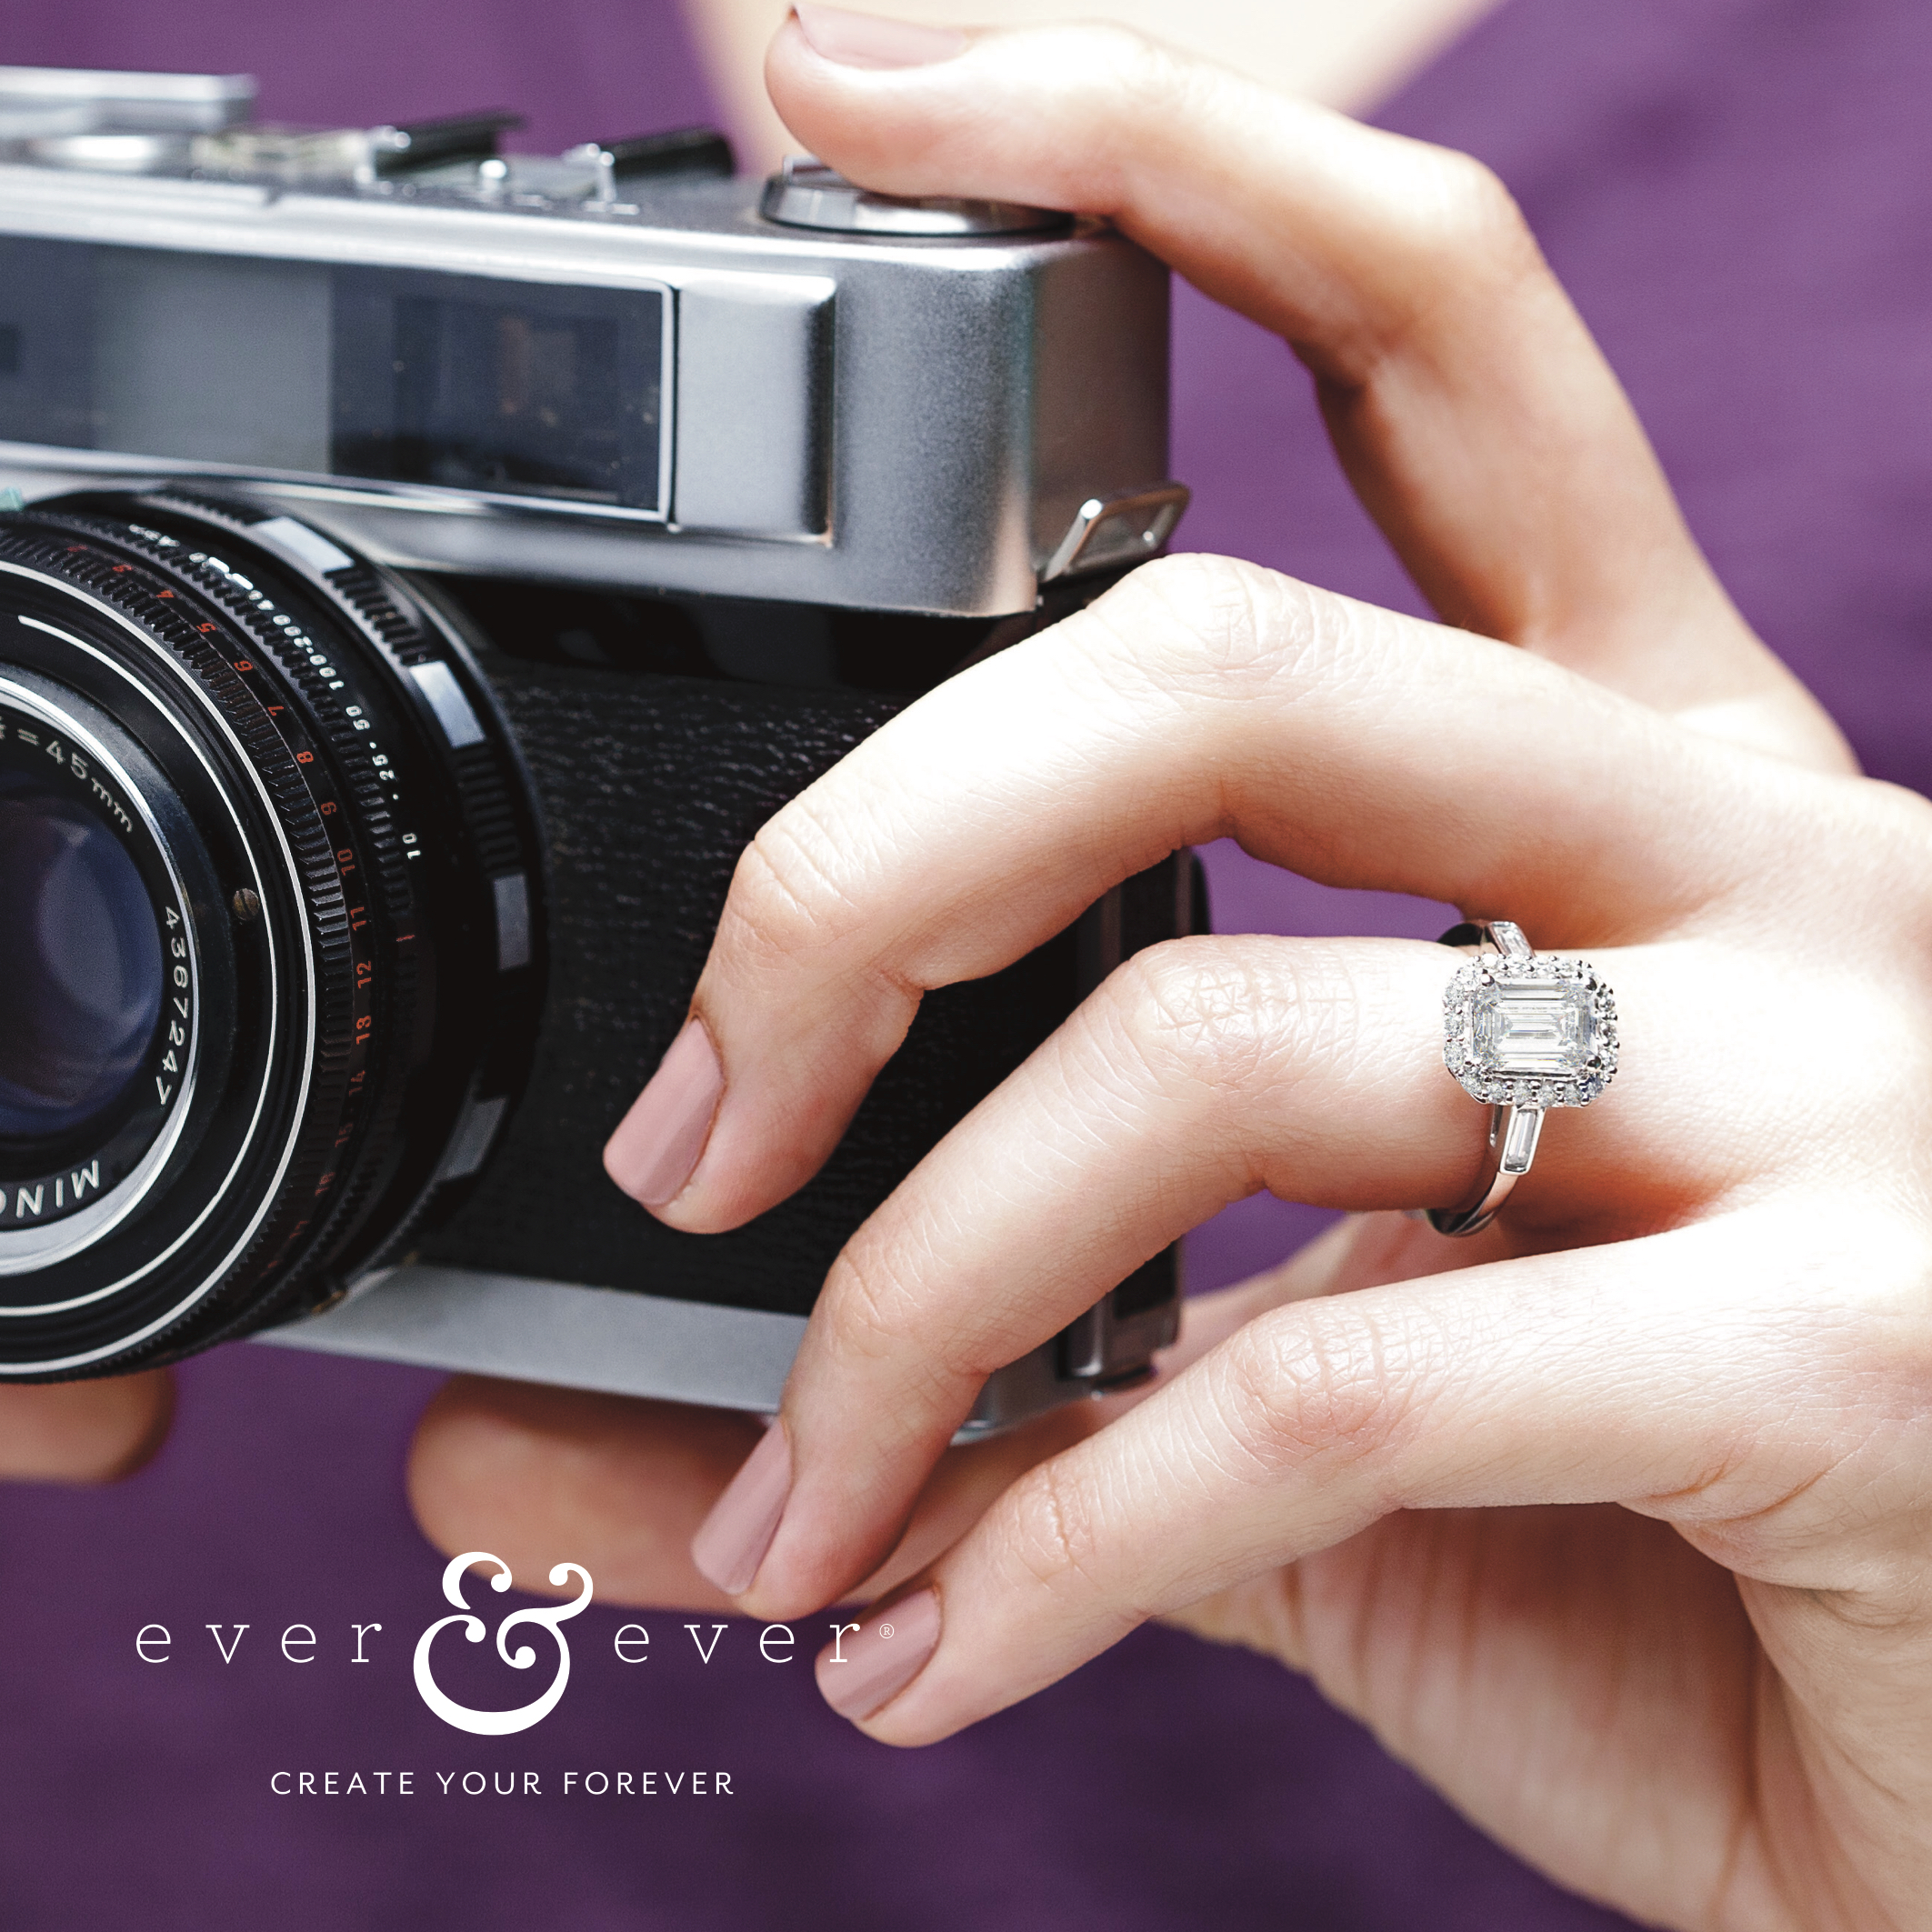 ever and ever Bridal, J West Jewelers, diamonds